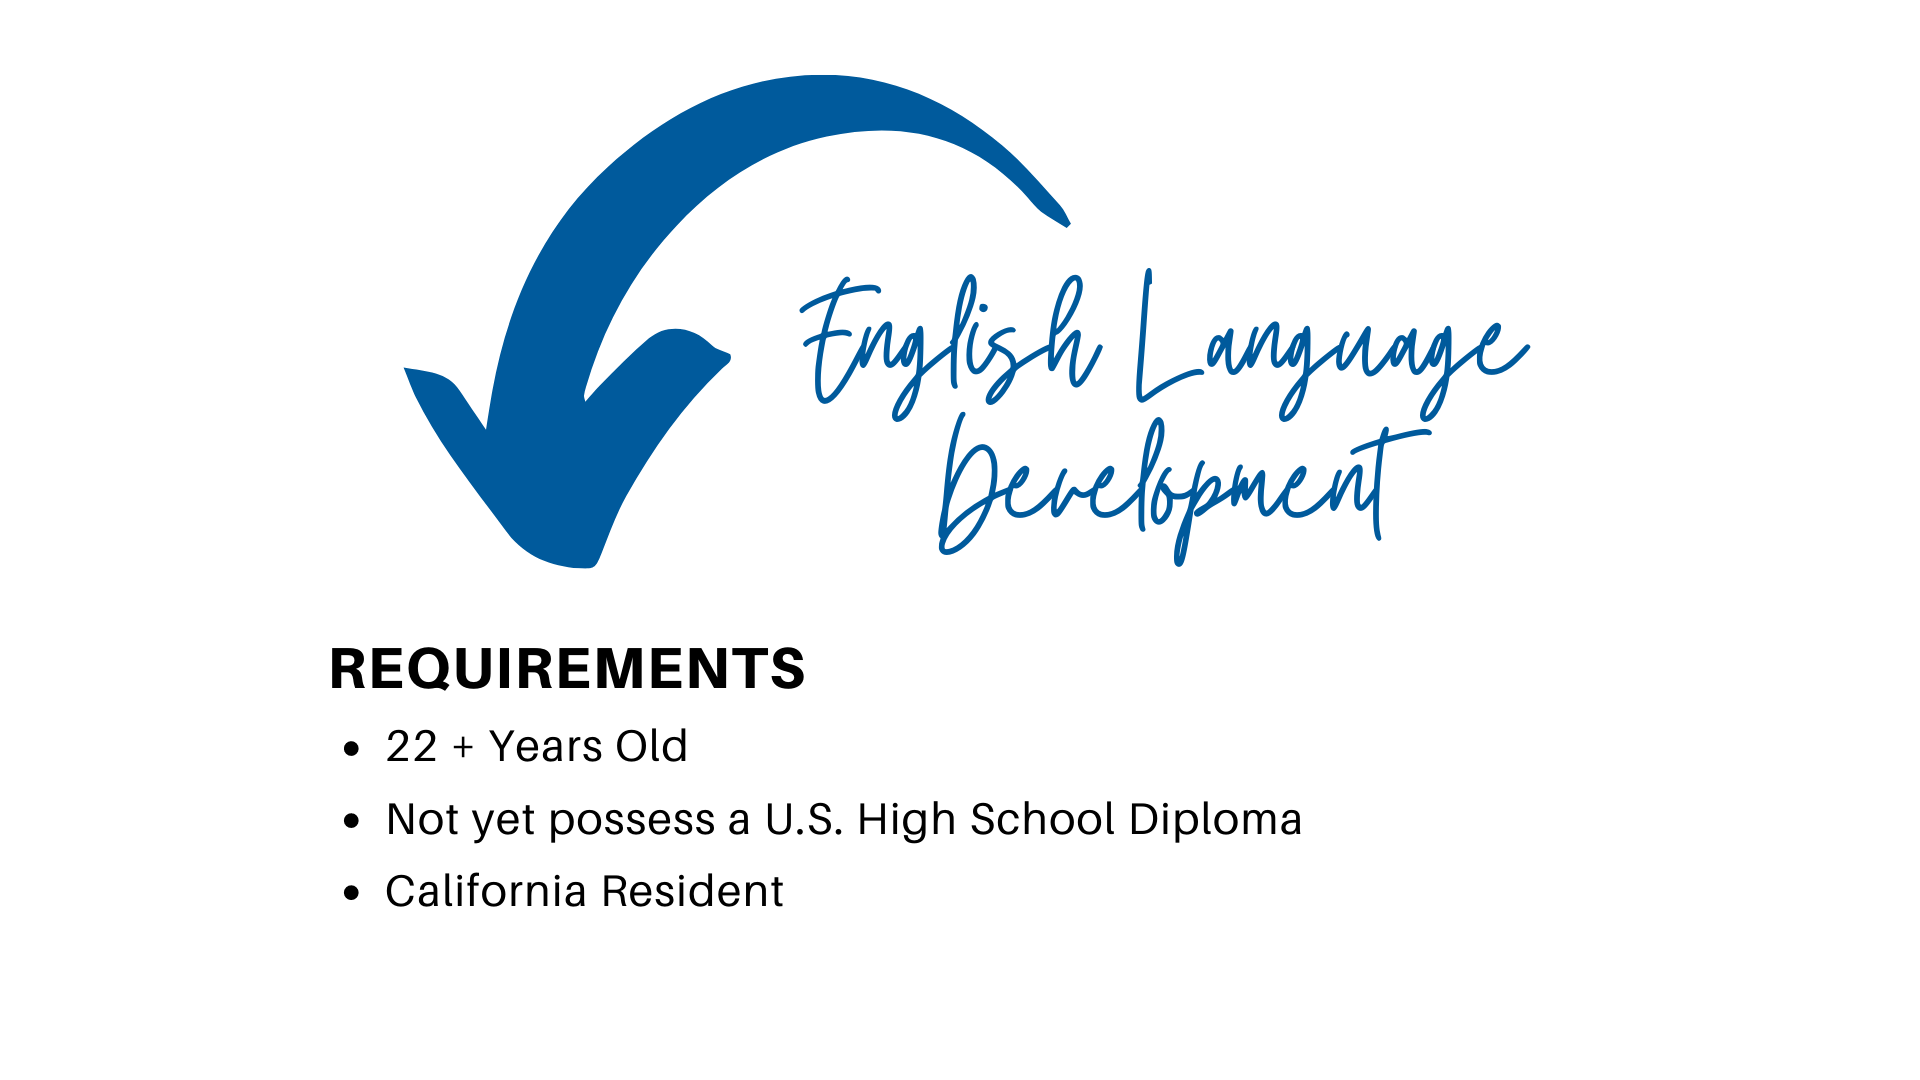 ELD requirements: 22+ years old, no US high school diploma, California resident